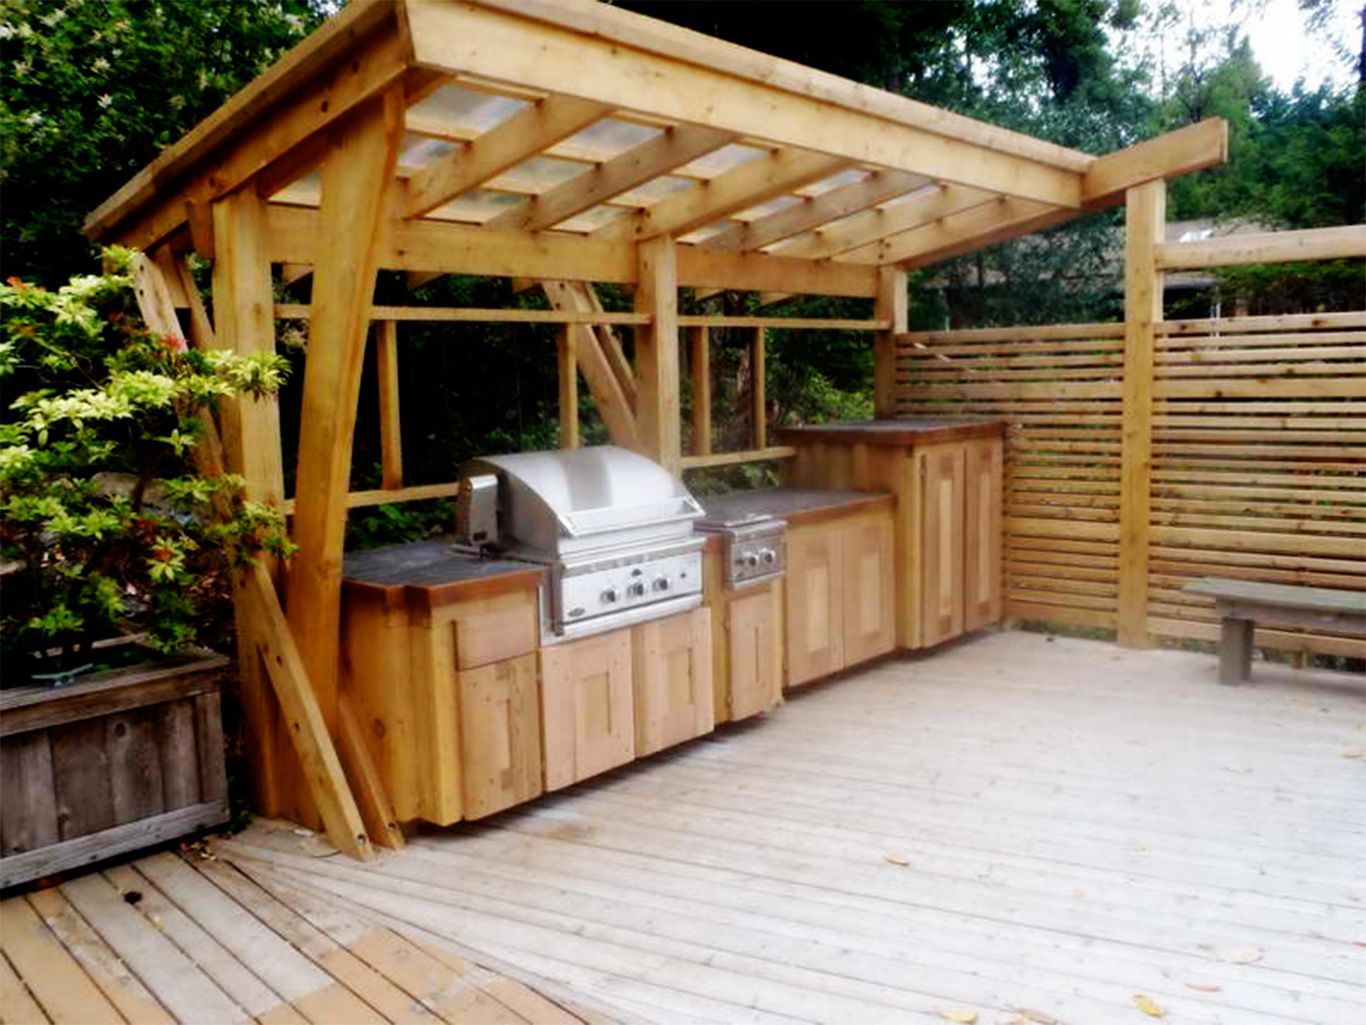 Build An Outdoor Kitchen In The Backyard Giving A Different Cooking Sensation Fresh Air A Build Outdoor Kitchen Outdoor Kitchen Design Outdoor Kitchen Island